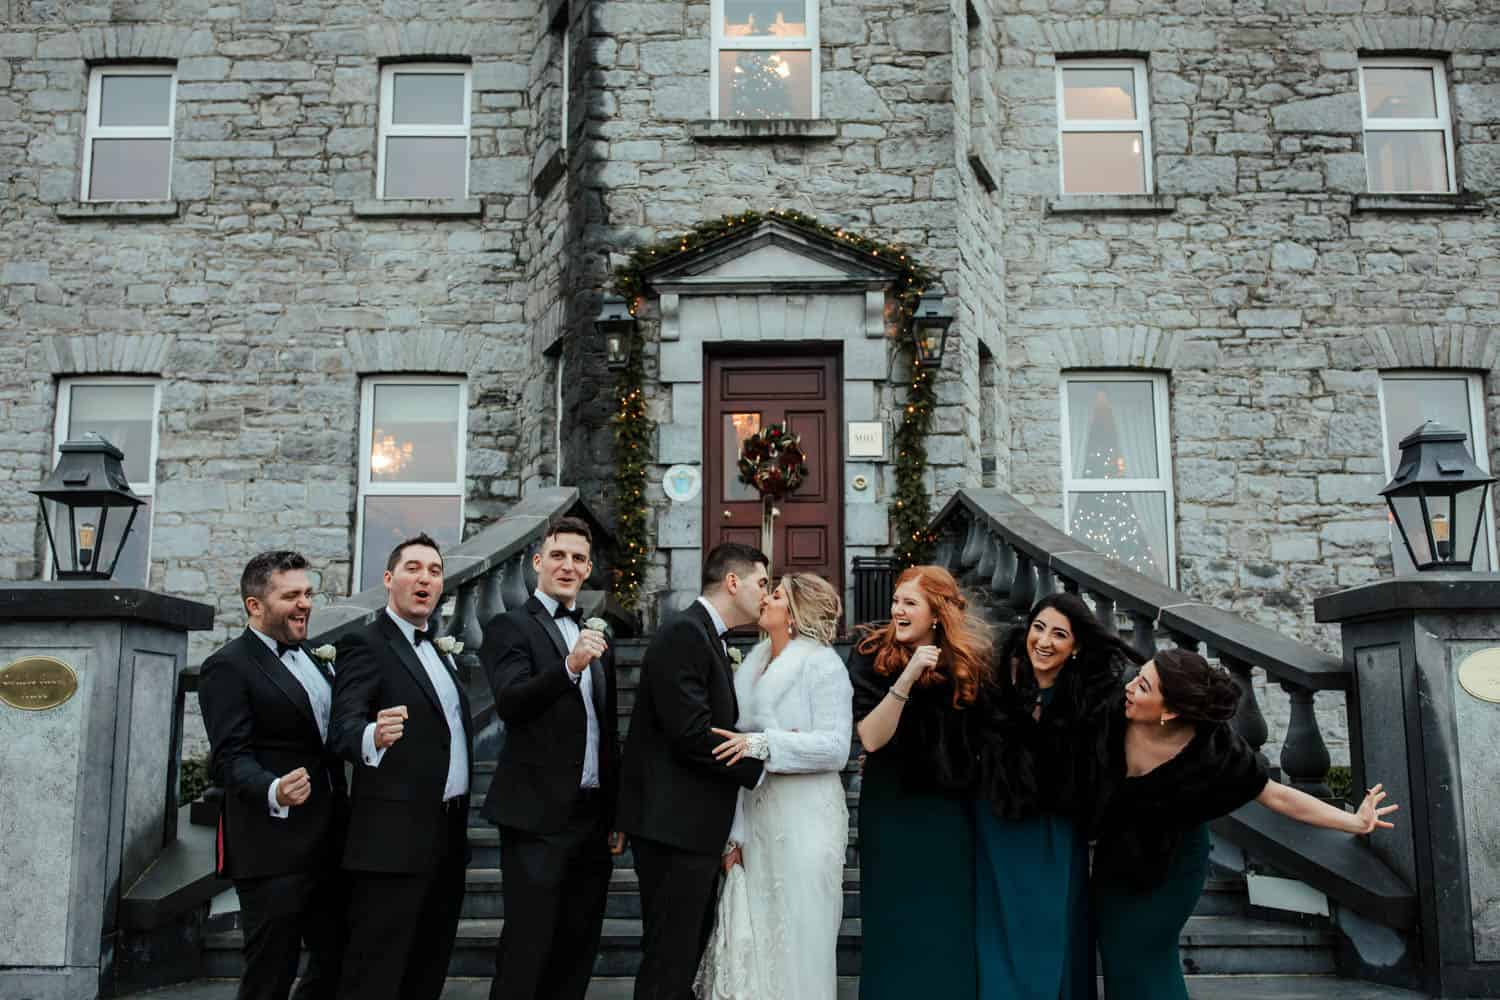 bridal party photos at glenlo abbey hotel